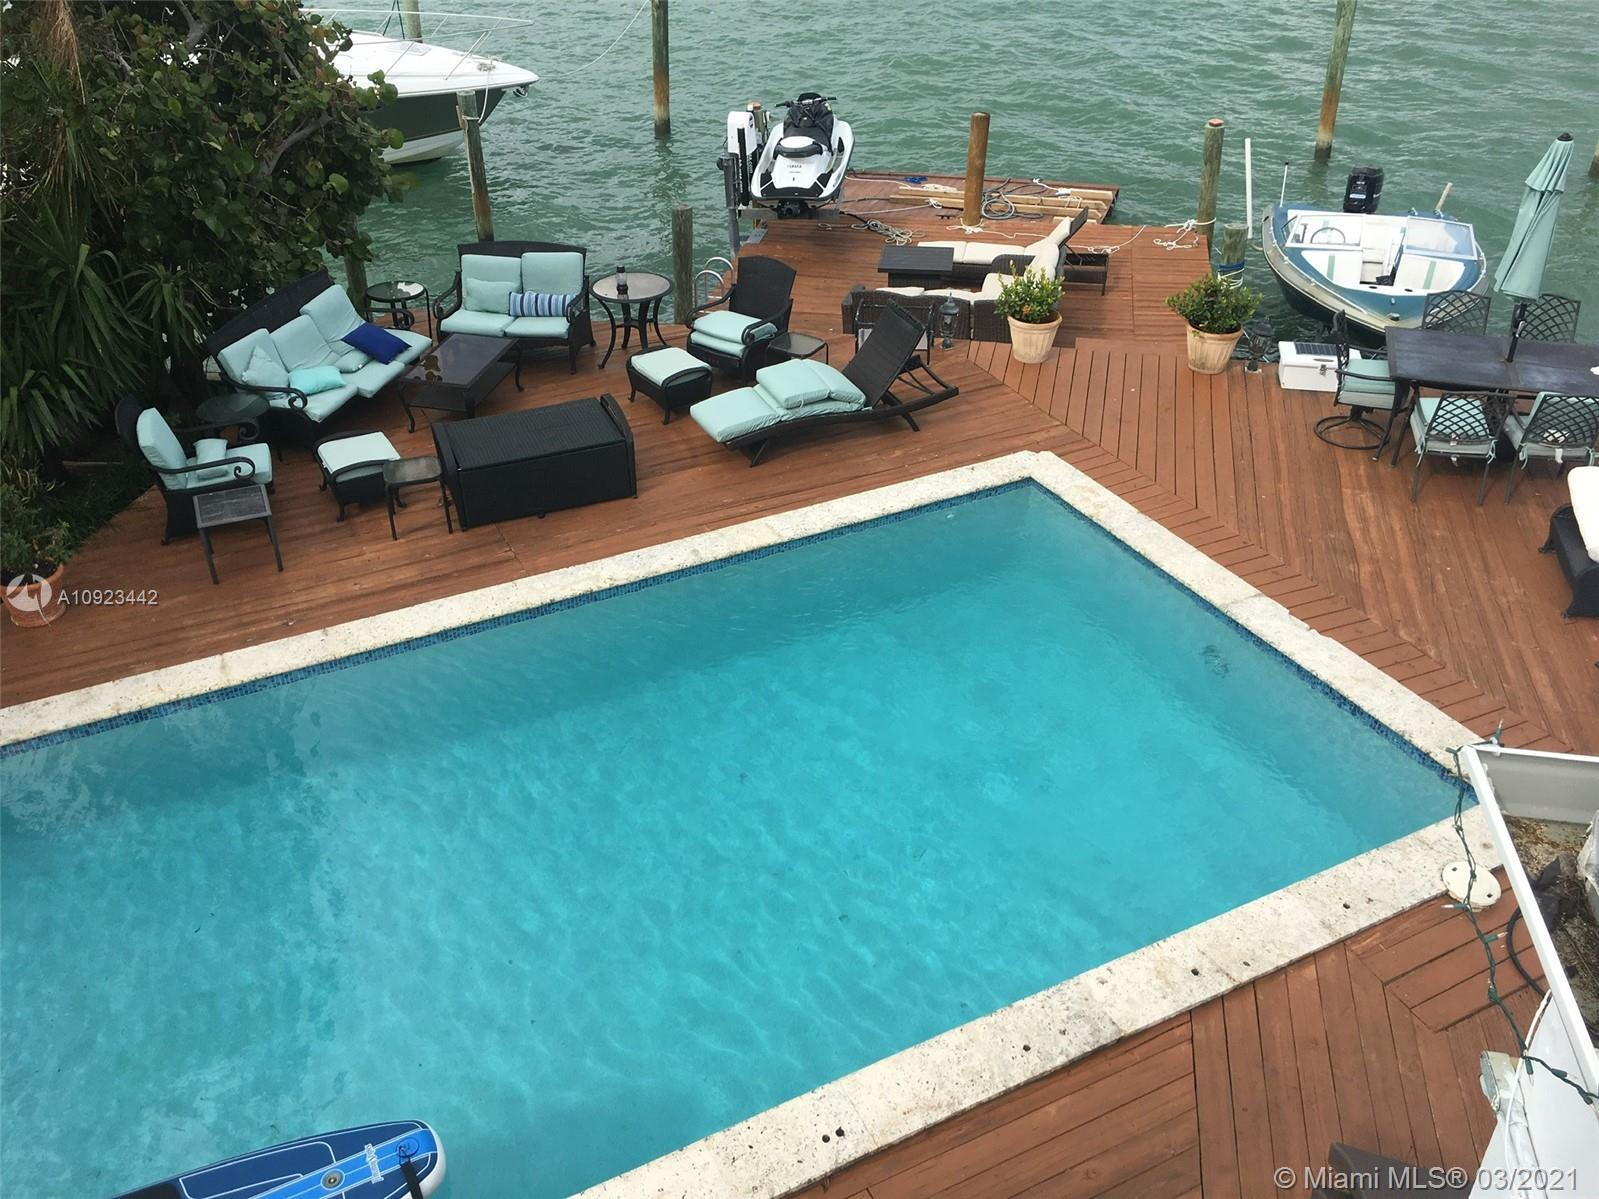 This 4/4 wide bay waterfront home with a dock, boat lift and jet ski lift has amazing wide bay view